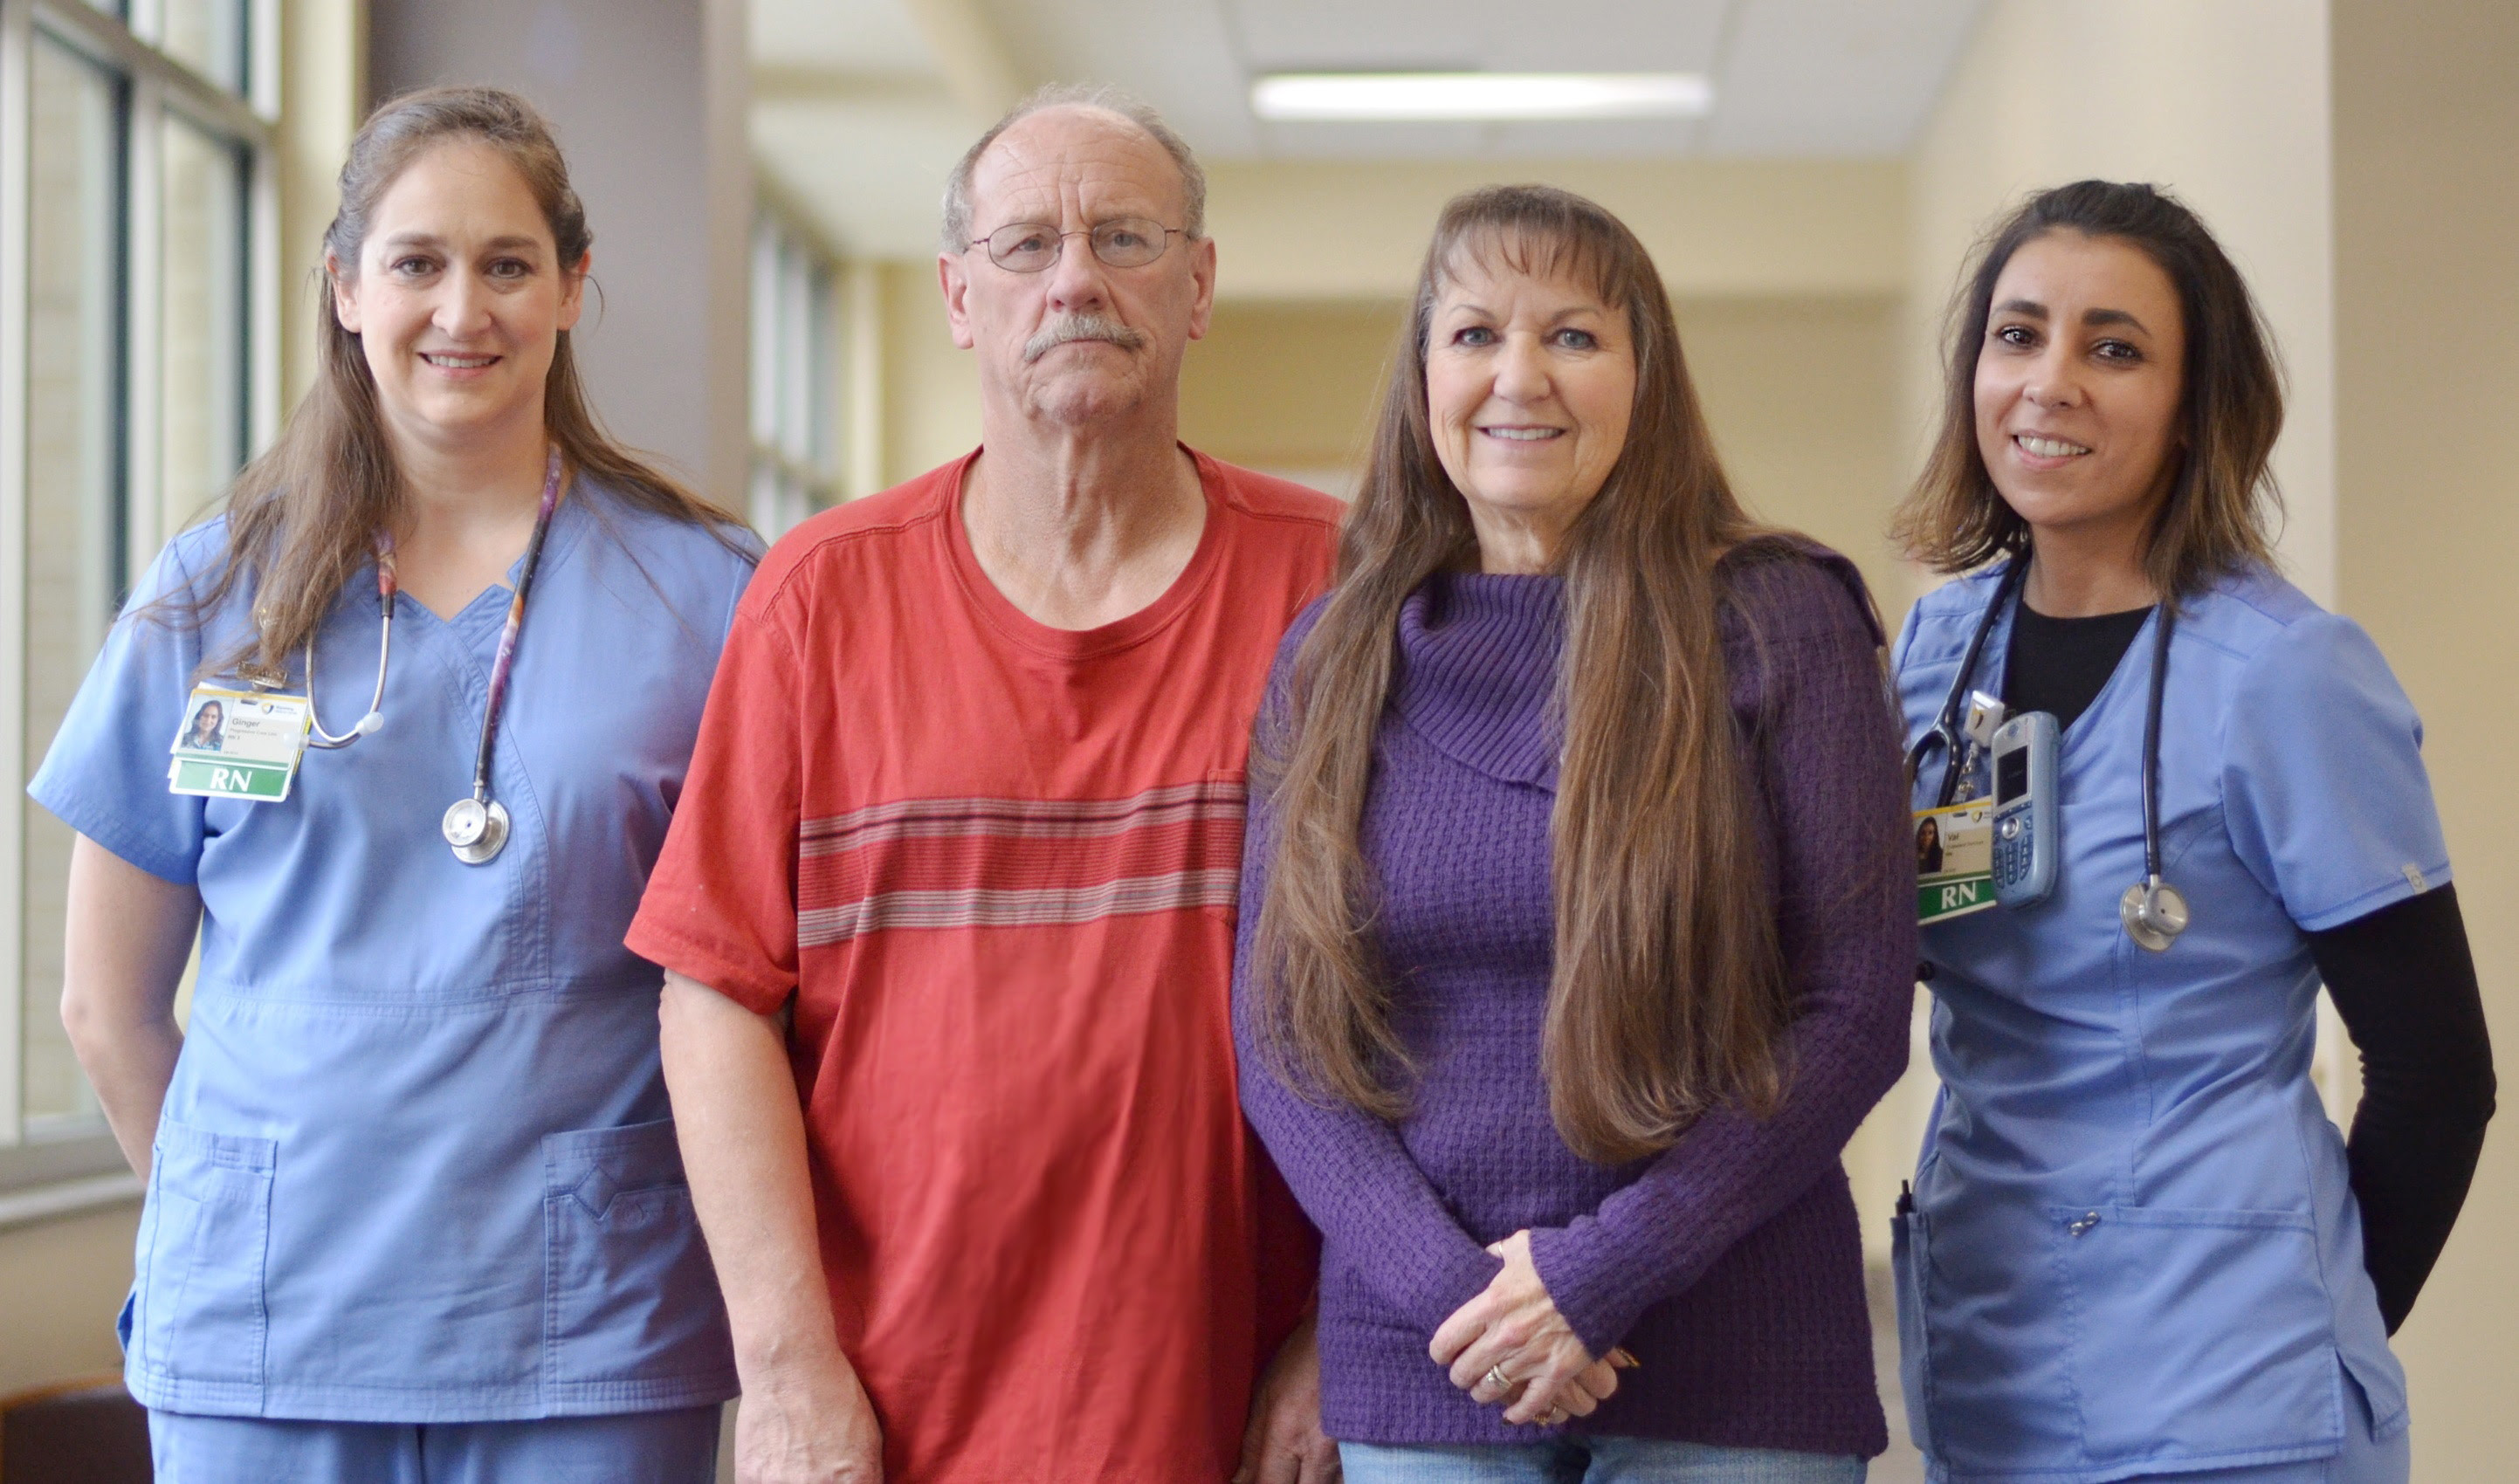 Right place, right time: Three WMC employees help revive ...